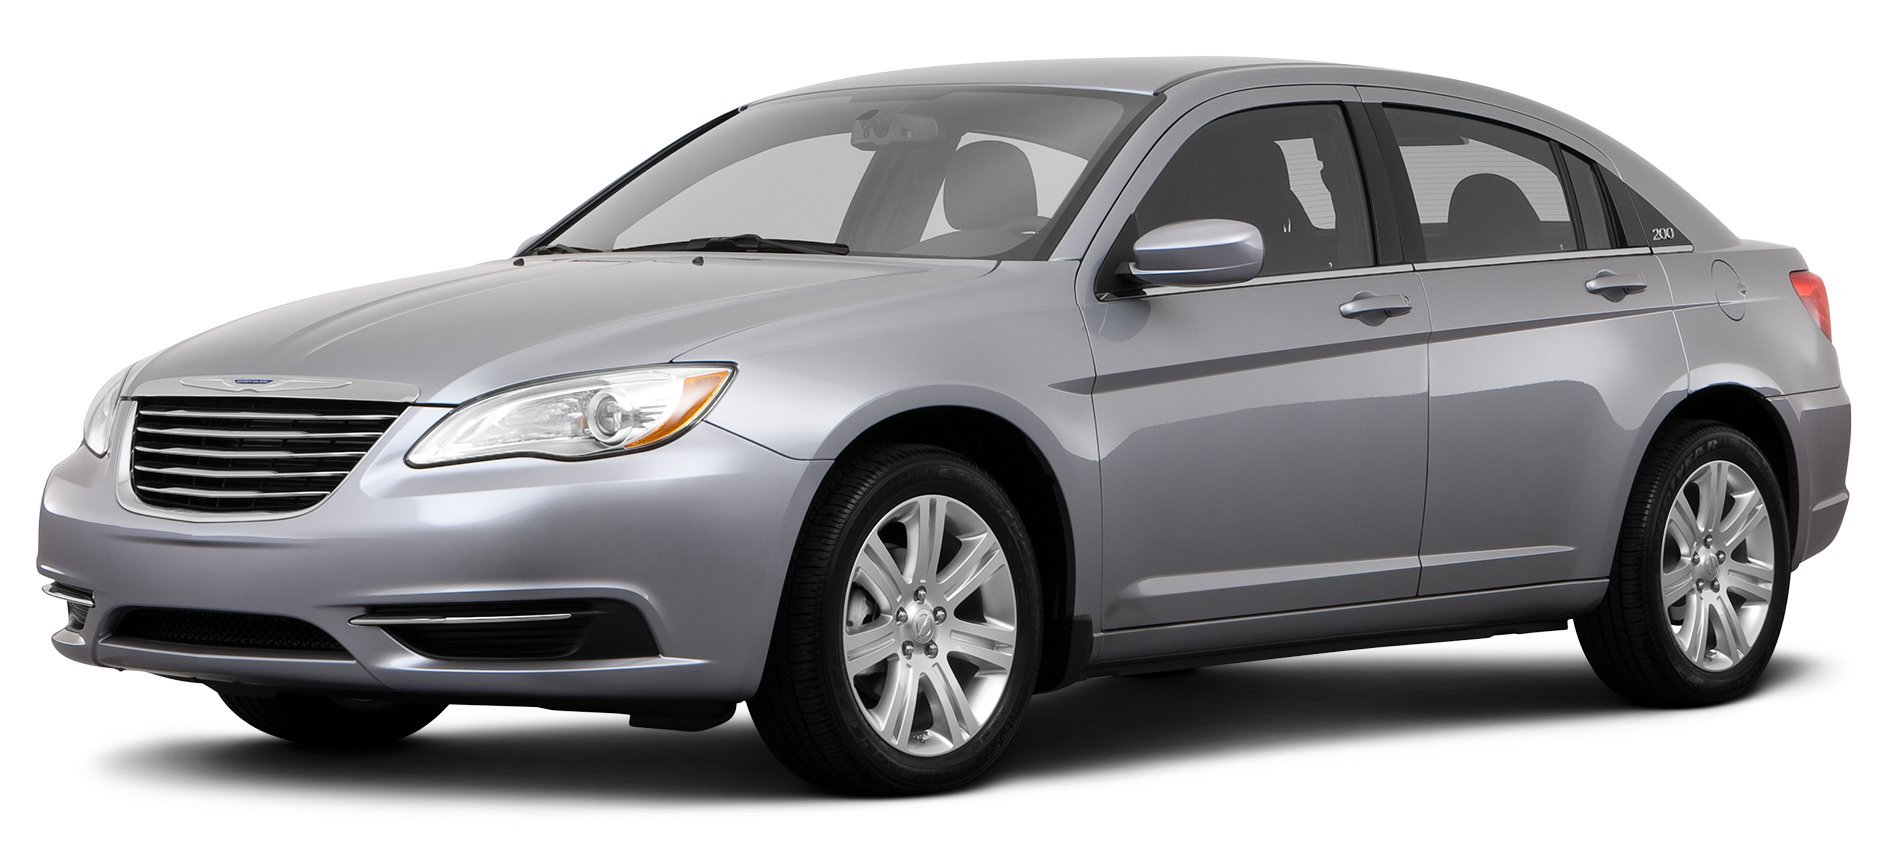 2013 Chrysler 200 Reviews Images And Specs Vehicles 2011 Fuel Filter Lx 4 Door Sedan